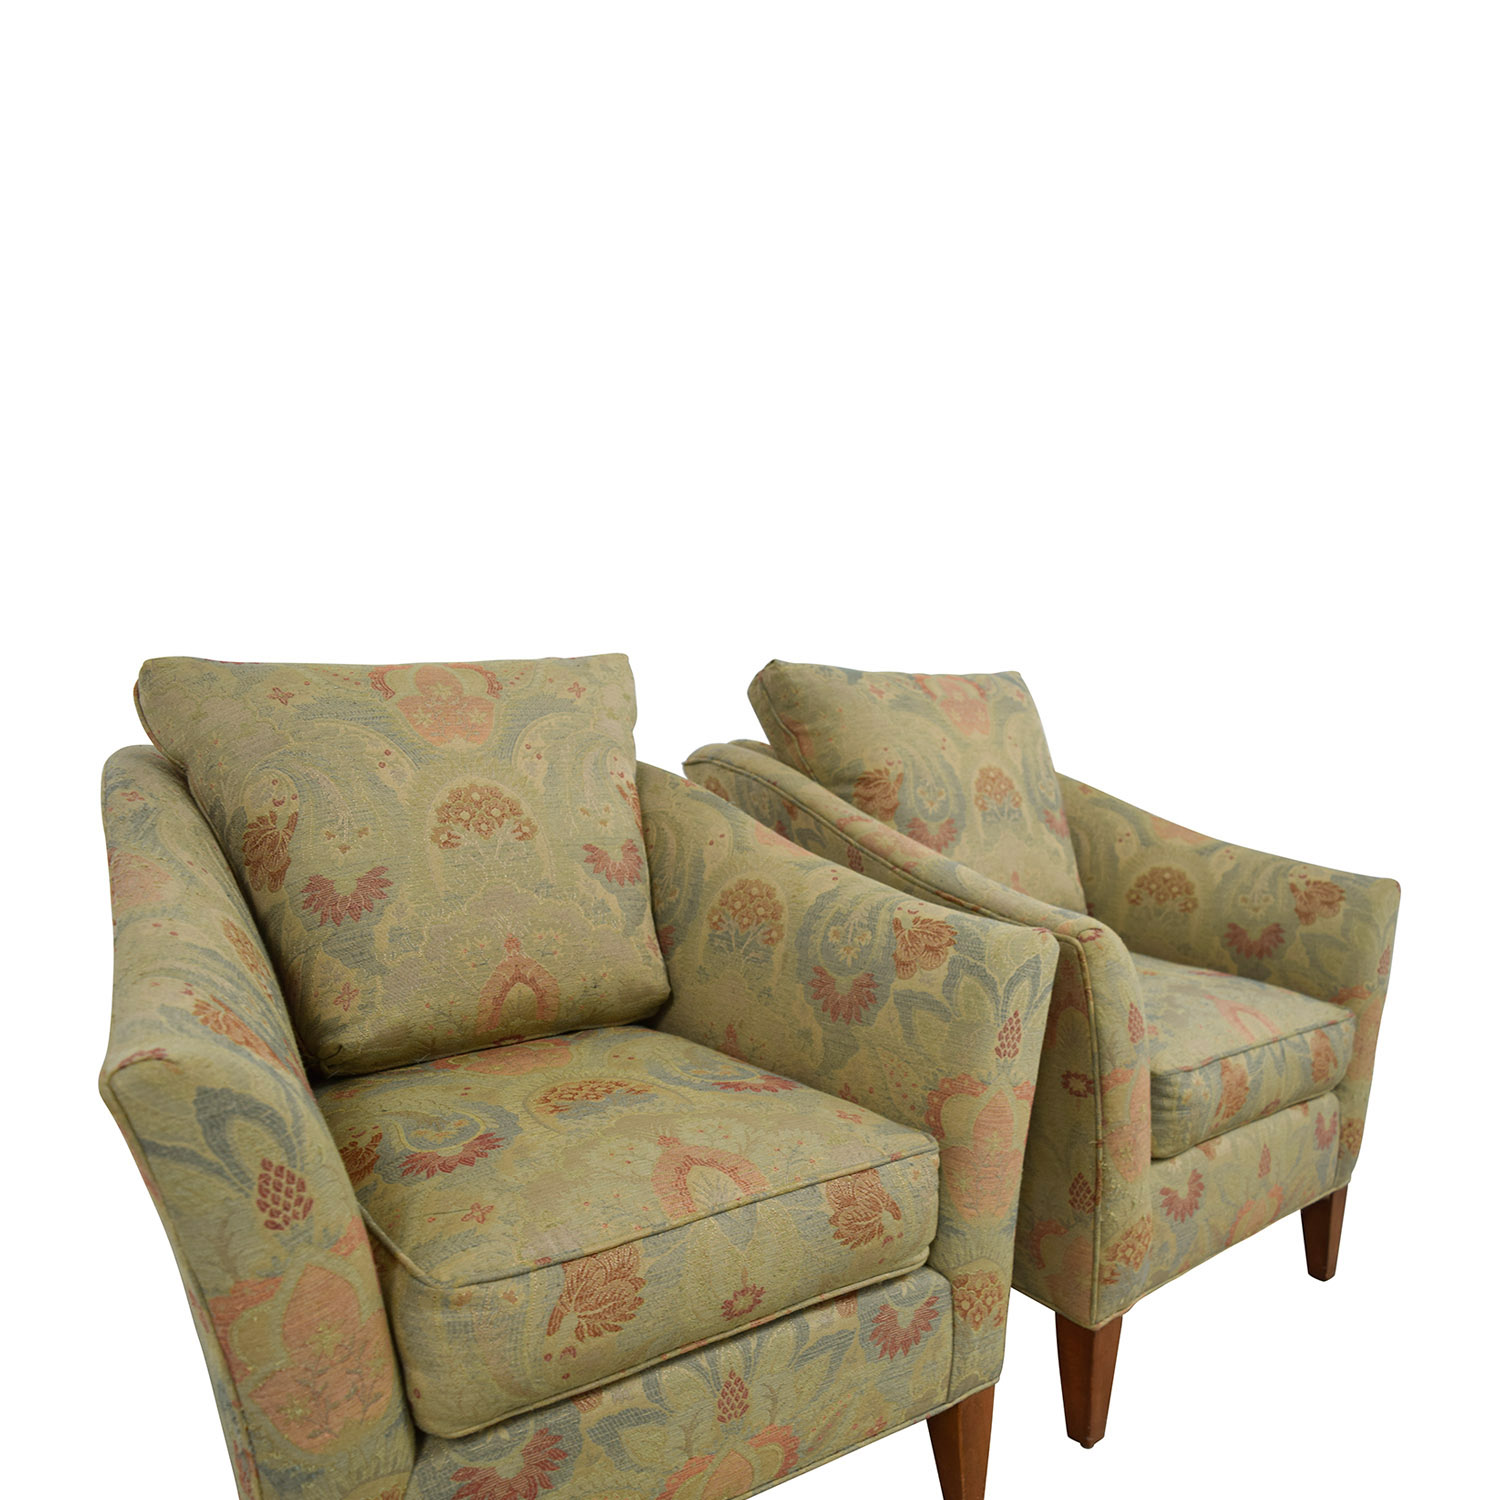 90 Off Ethan Allen Ethan Allen Gibson Floral Chairs